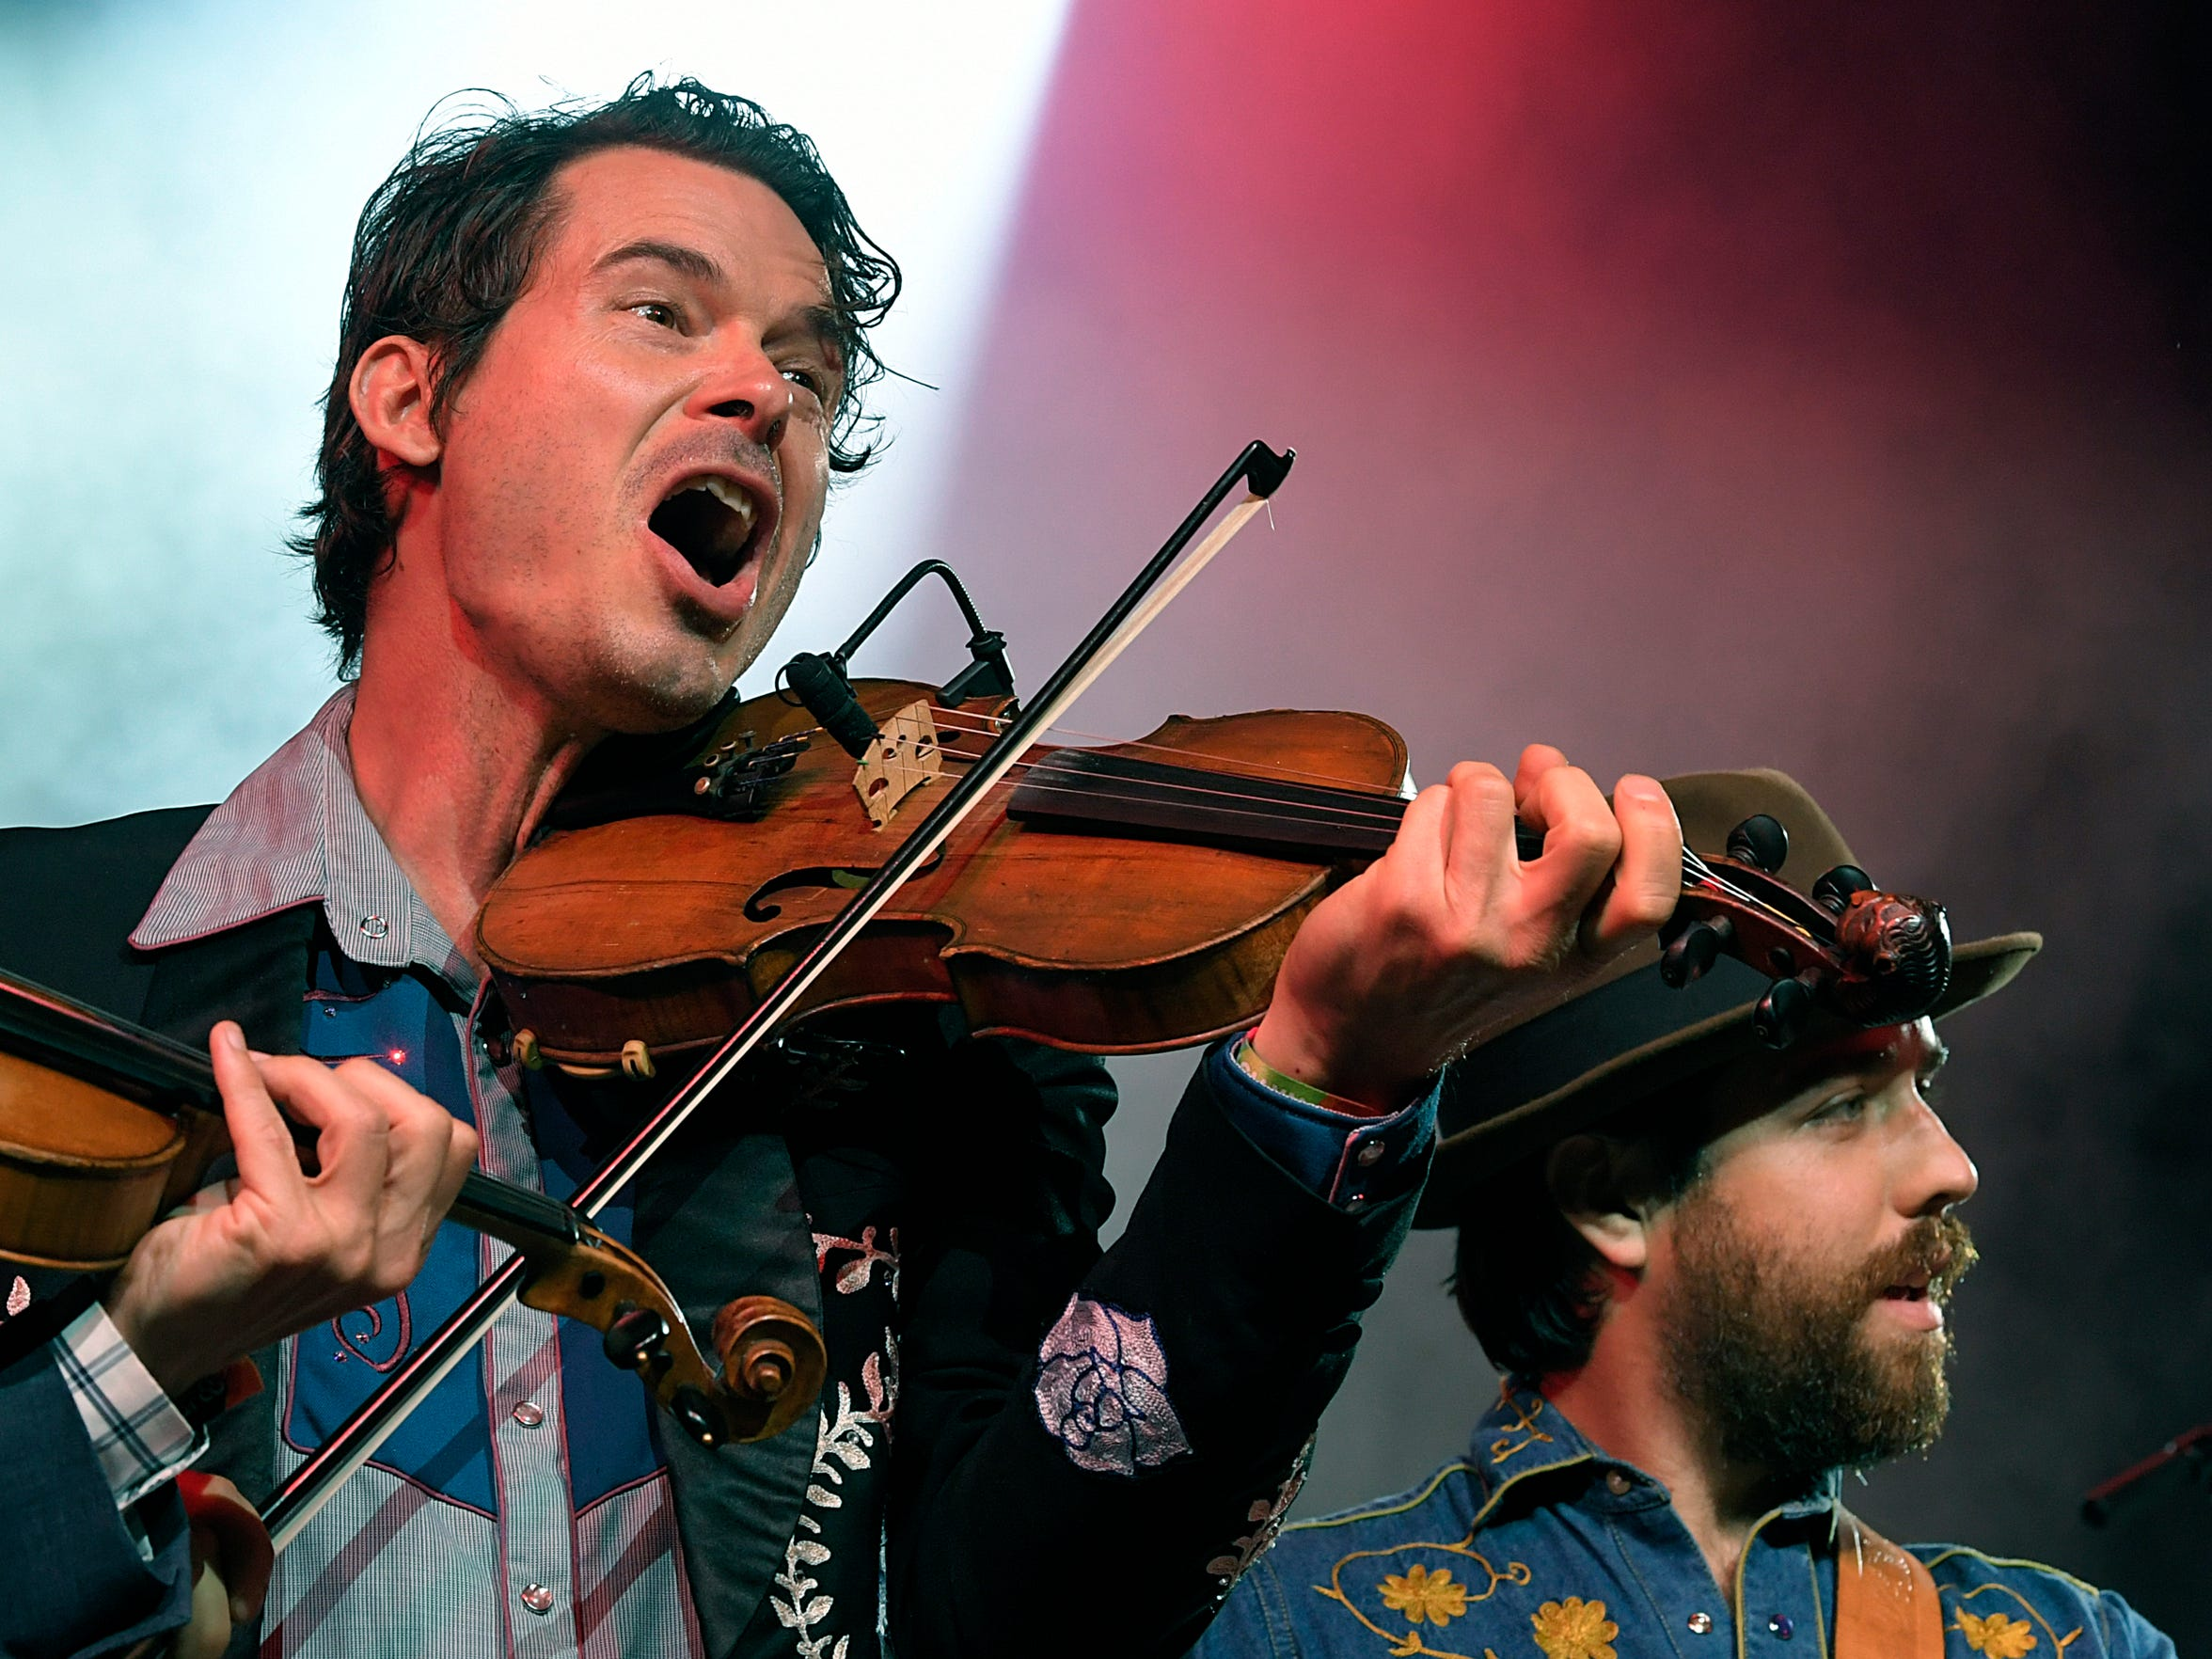 Old Crow Medicine Show's Ketch Secor sings during the Grand Ole Opry on the final night of the 17th annual Bonnaroo Music and Arts Festival in Manchester, Tenn., on June 10, 2018